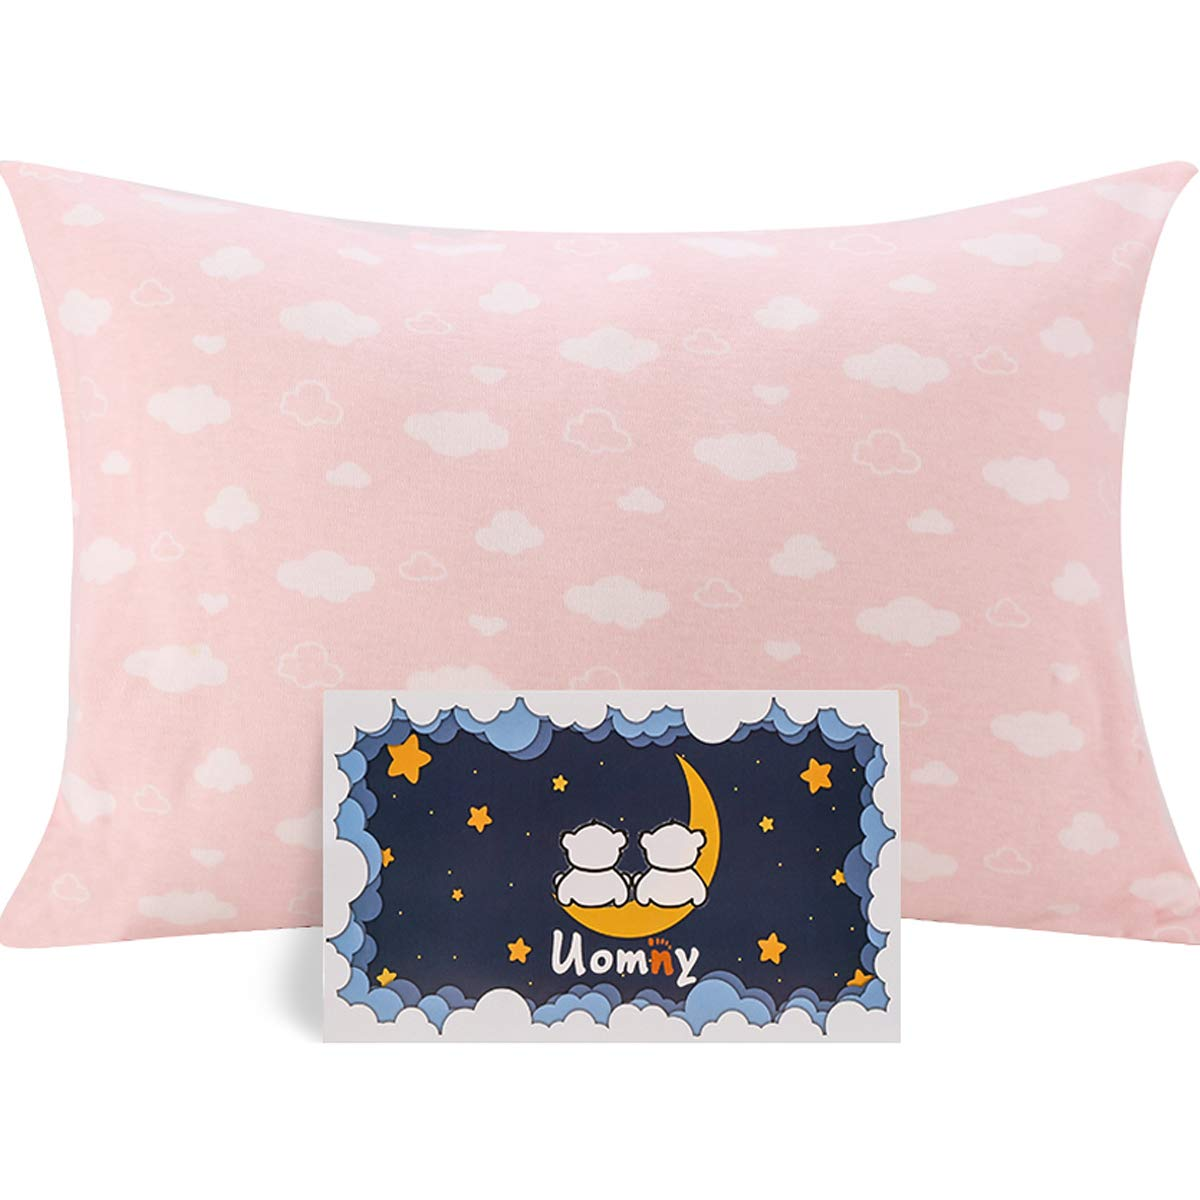 UOMNY Kids Toddler Pillowcases100% Natural Cotton Travel Pillowcase Cover with Envelope Closure 1 Pcs 14x19 Baby Pillow Cases for Sleeping Tiny Pillows case Kids' Pillowcases